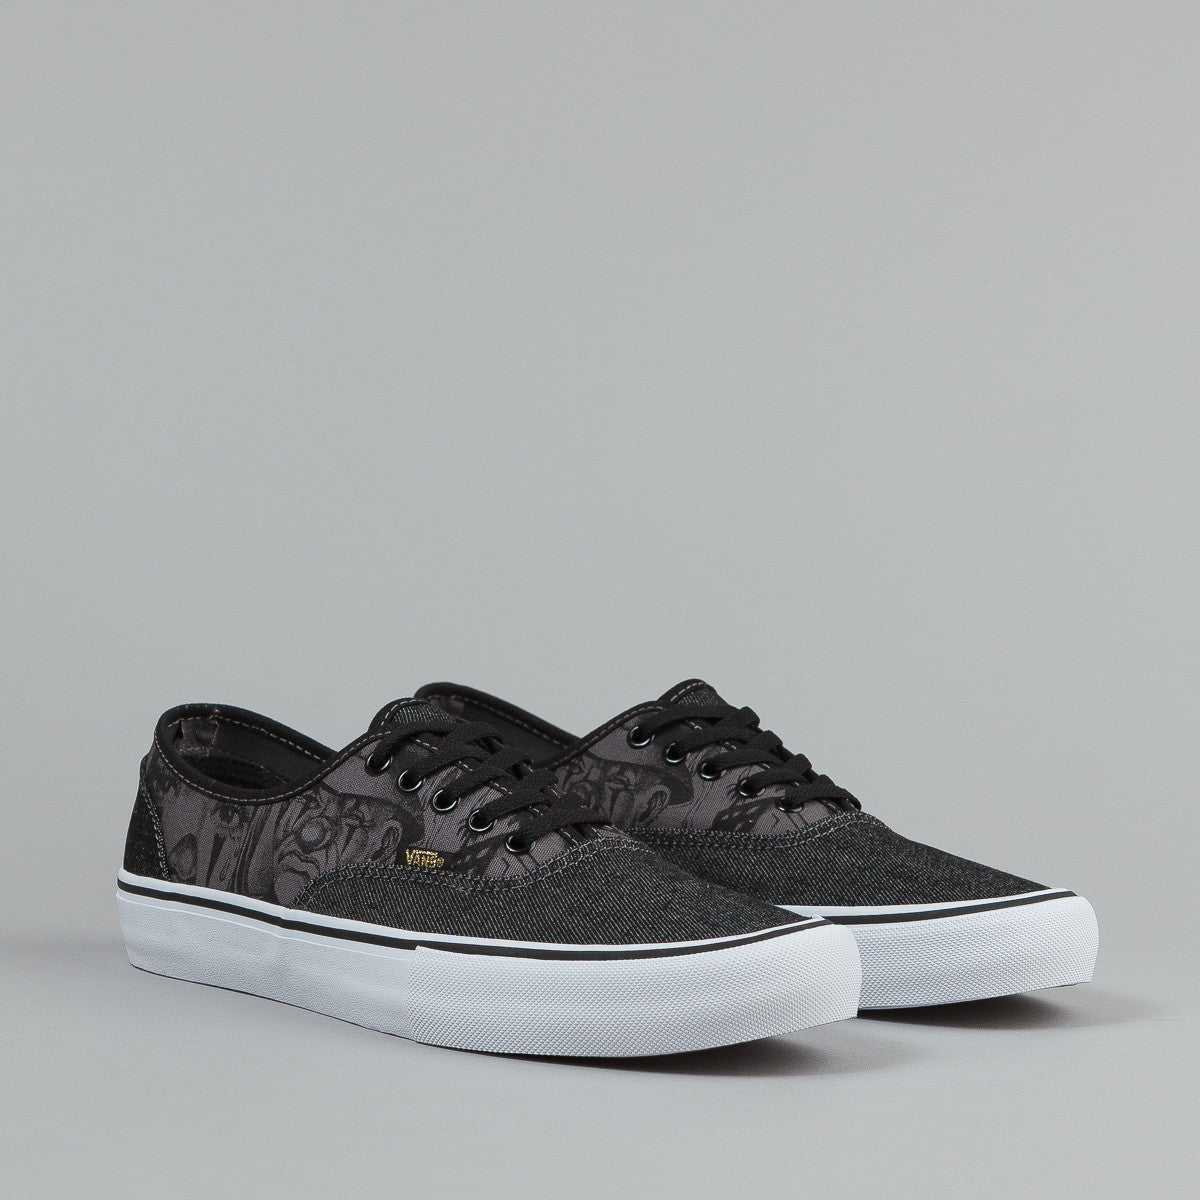 Vans Syndicate Authentic Shoes (Mister Cartoon) Black / Gold